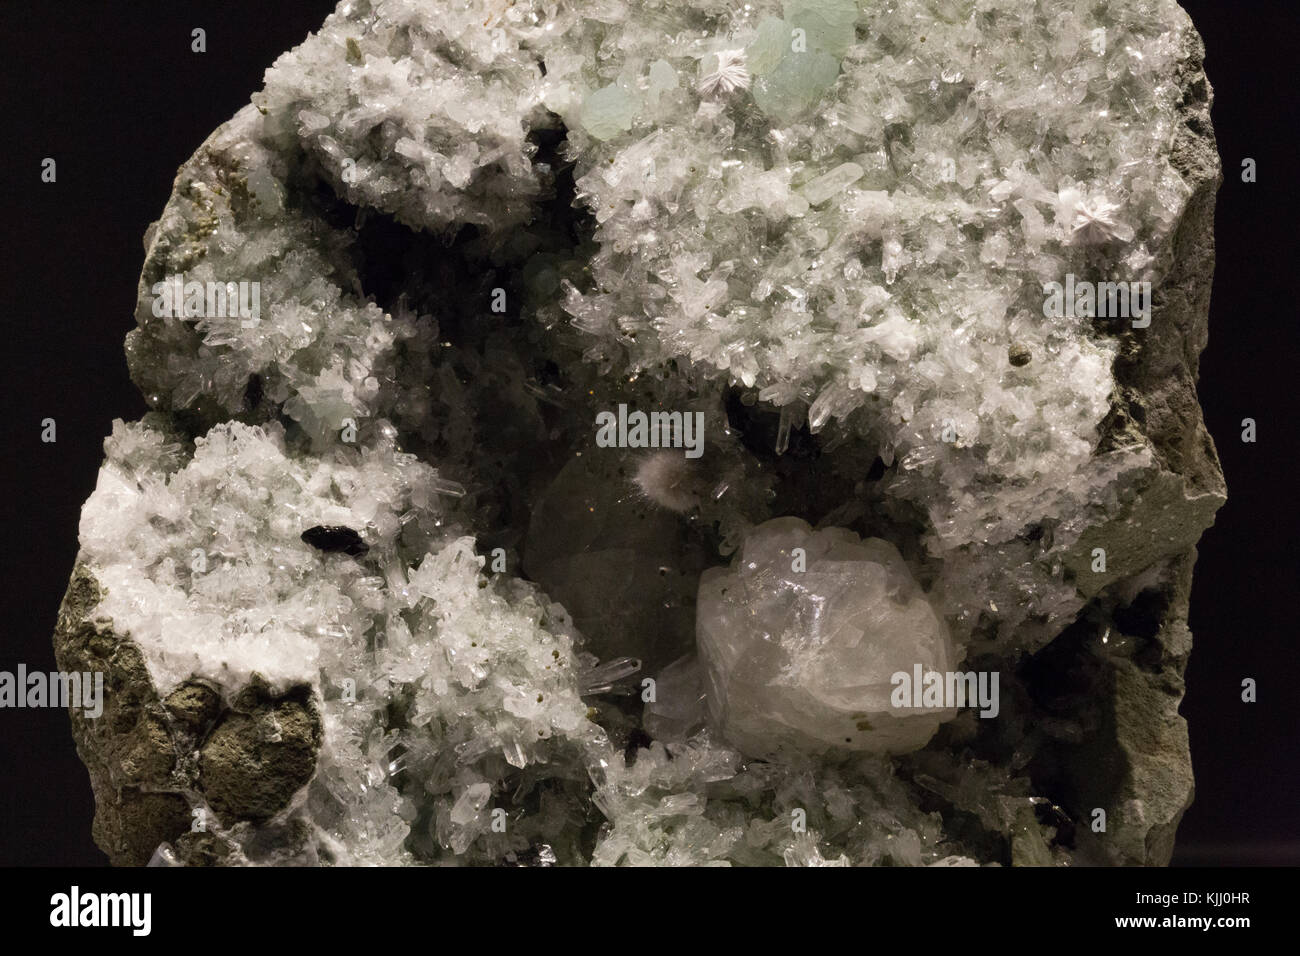 Crystal Rock at Melbourne Museum - Stock Image